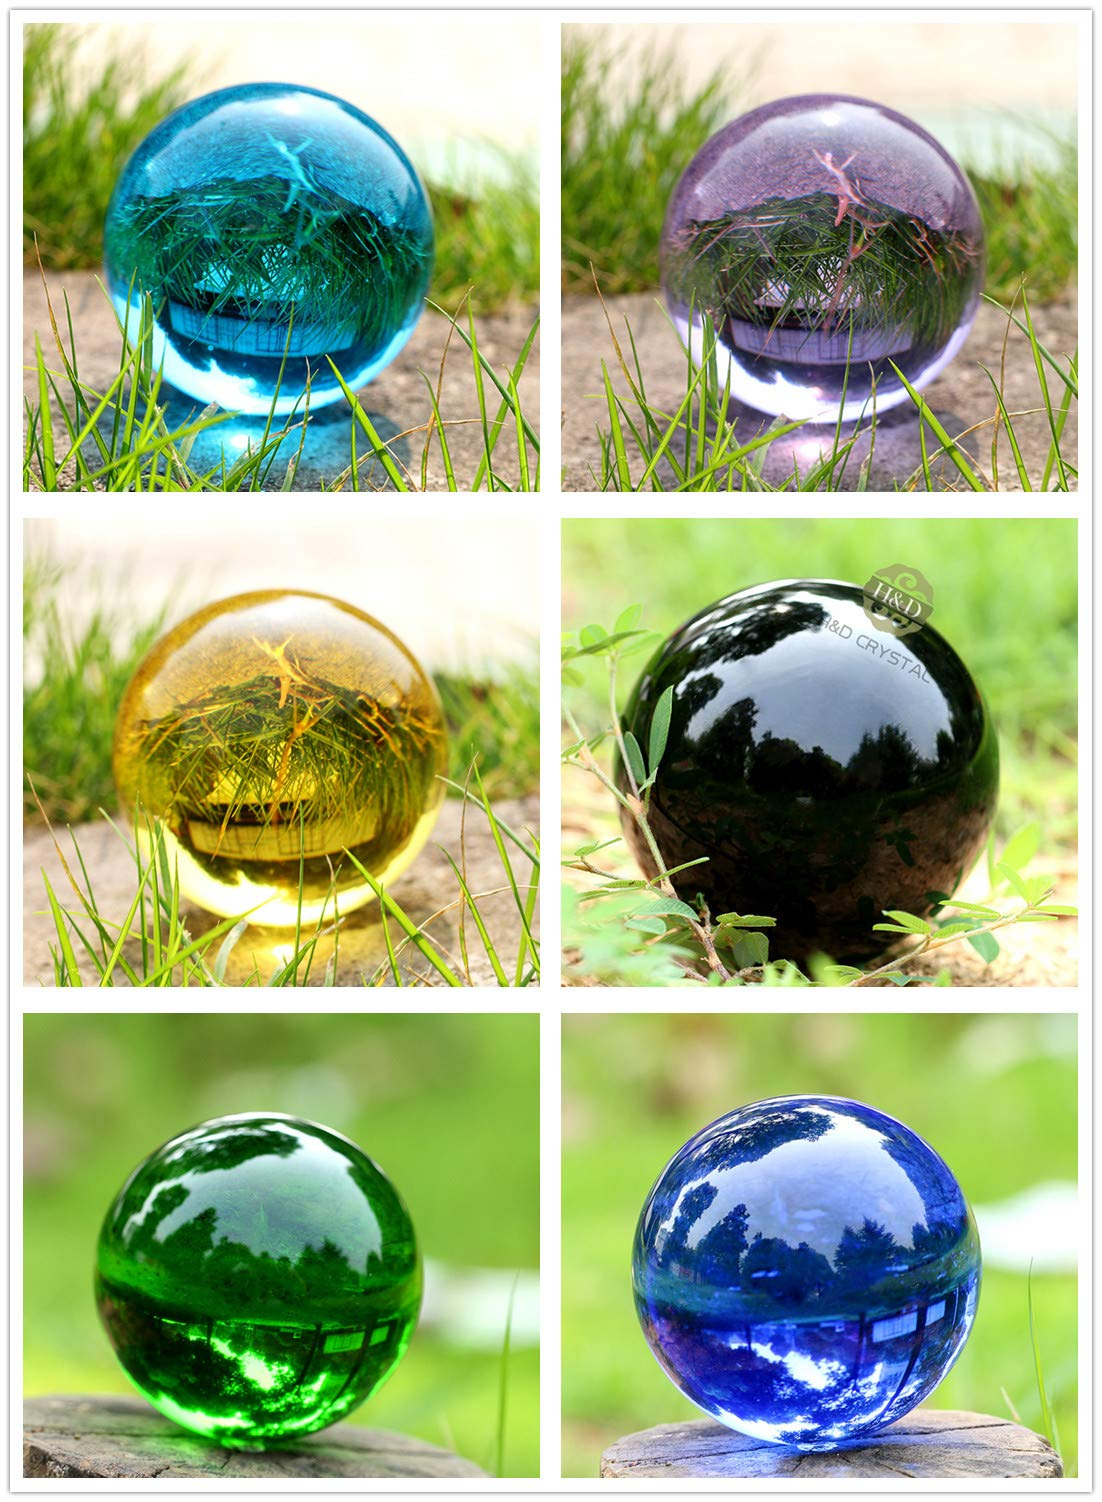 H&D 60mm 6-Color Transparent Crystal Balls with Stand for Photography-Set of 6